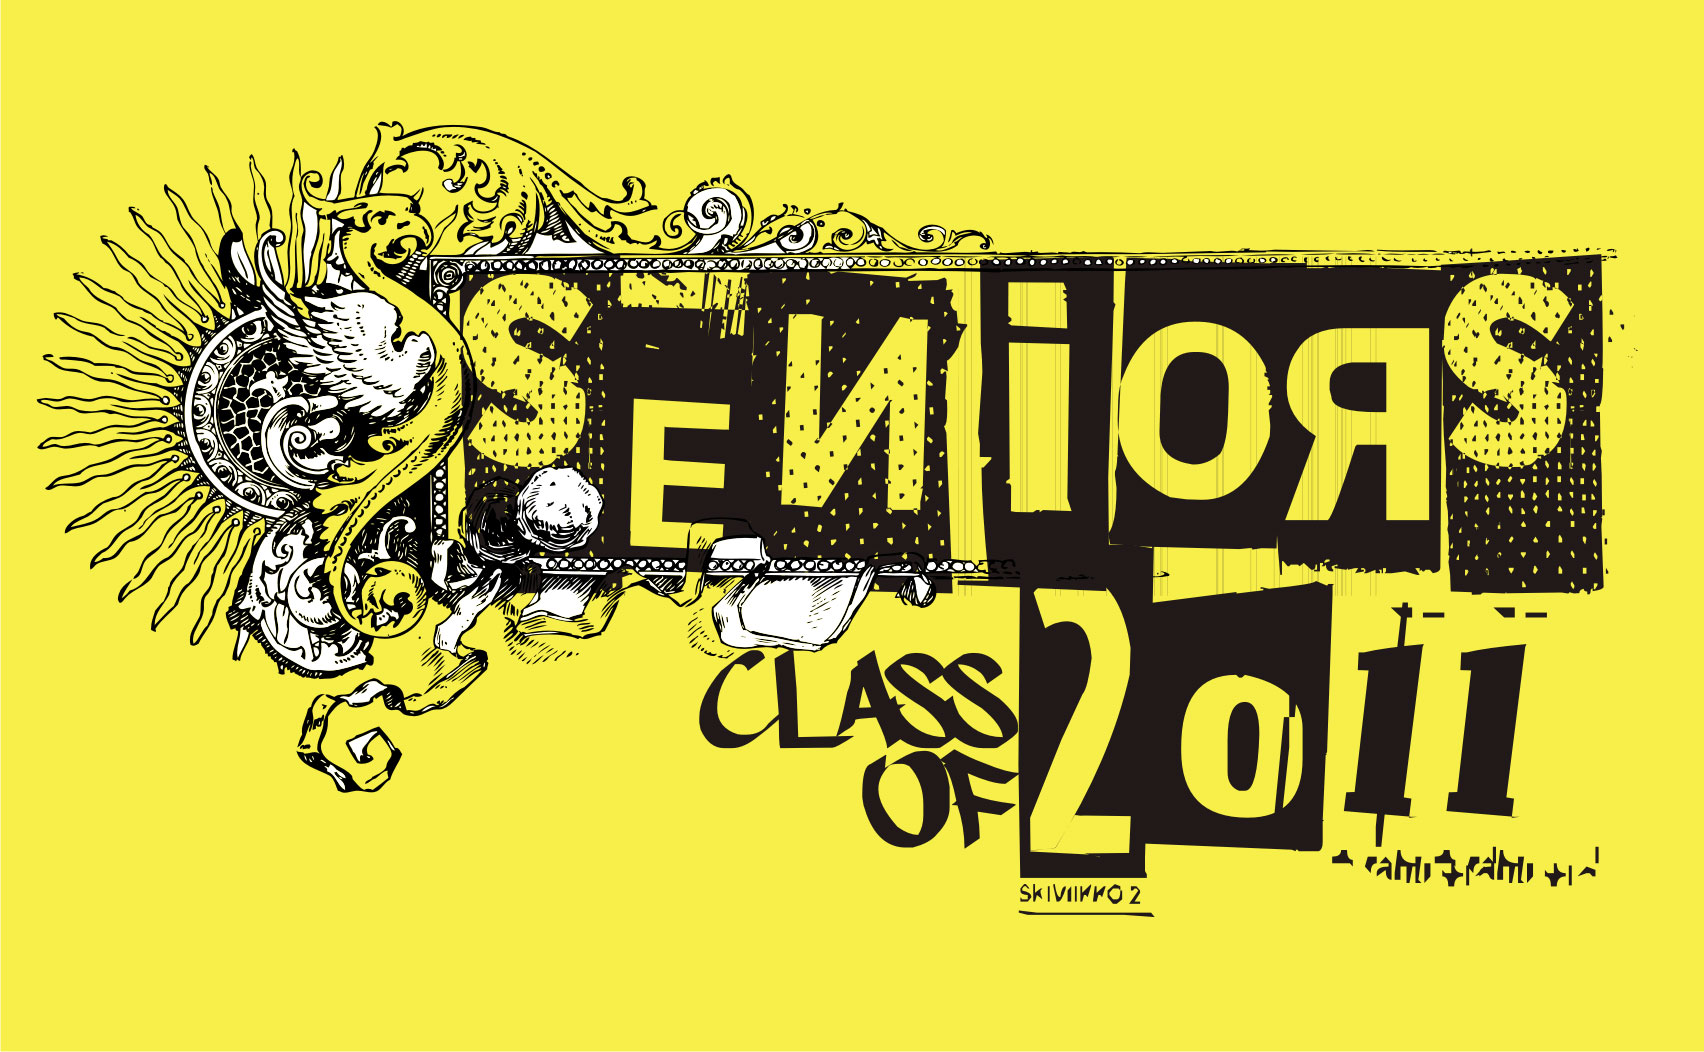 New Senior Shirt Design:  Architectural, Ornate, Vintage